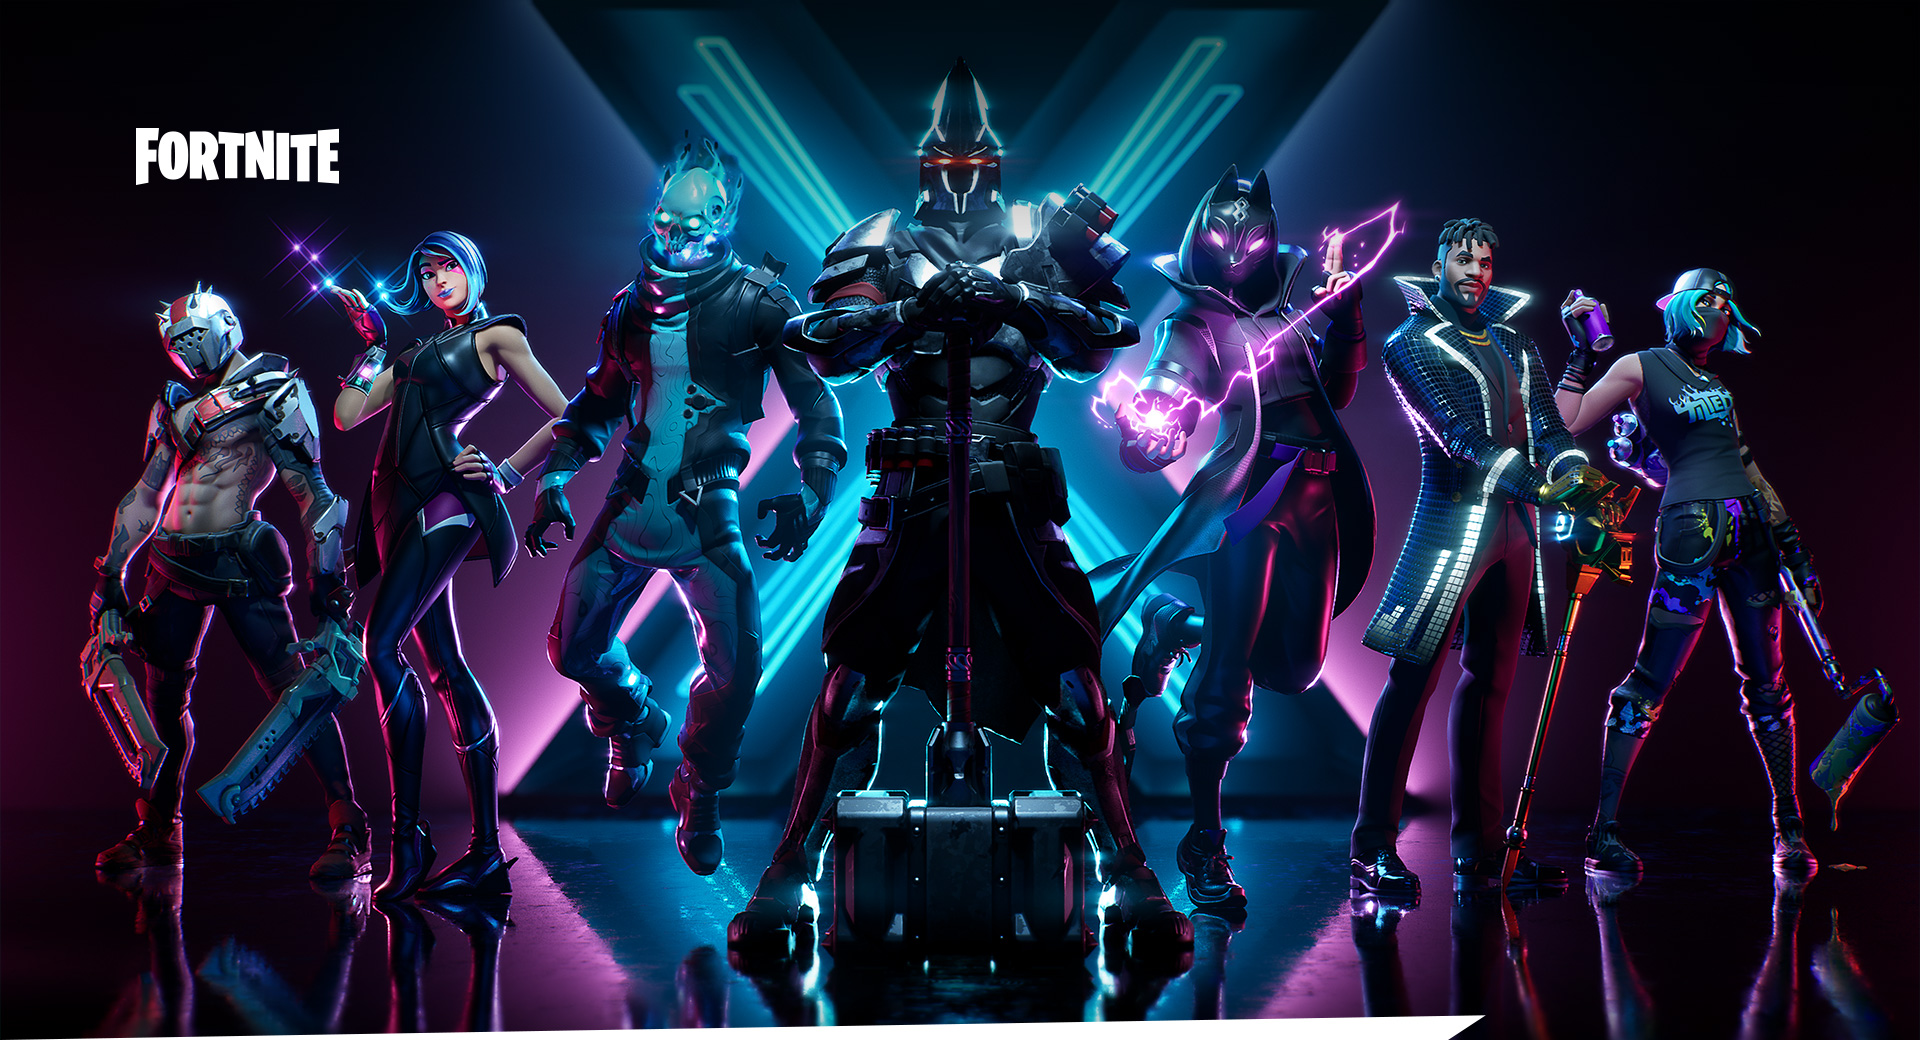 Fortnite, visão frontal de sete personagens do Fortnite posando